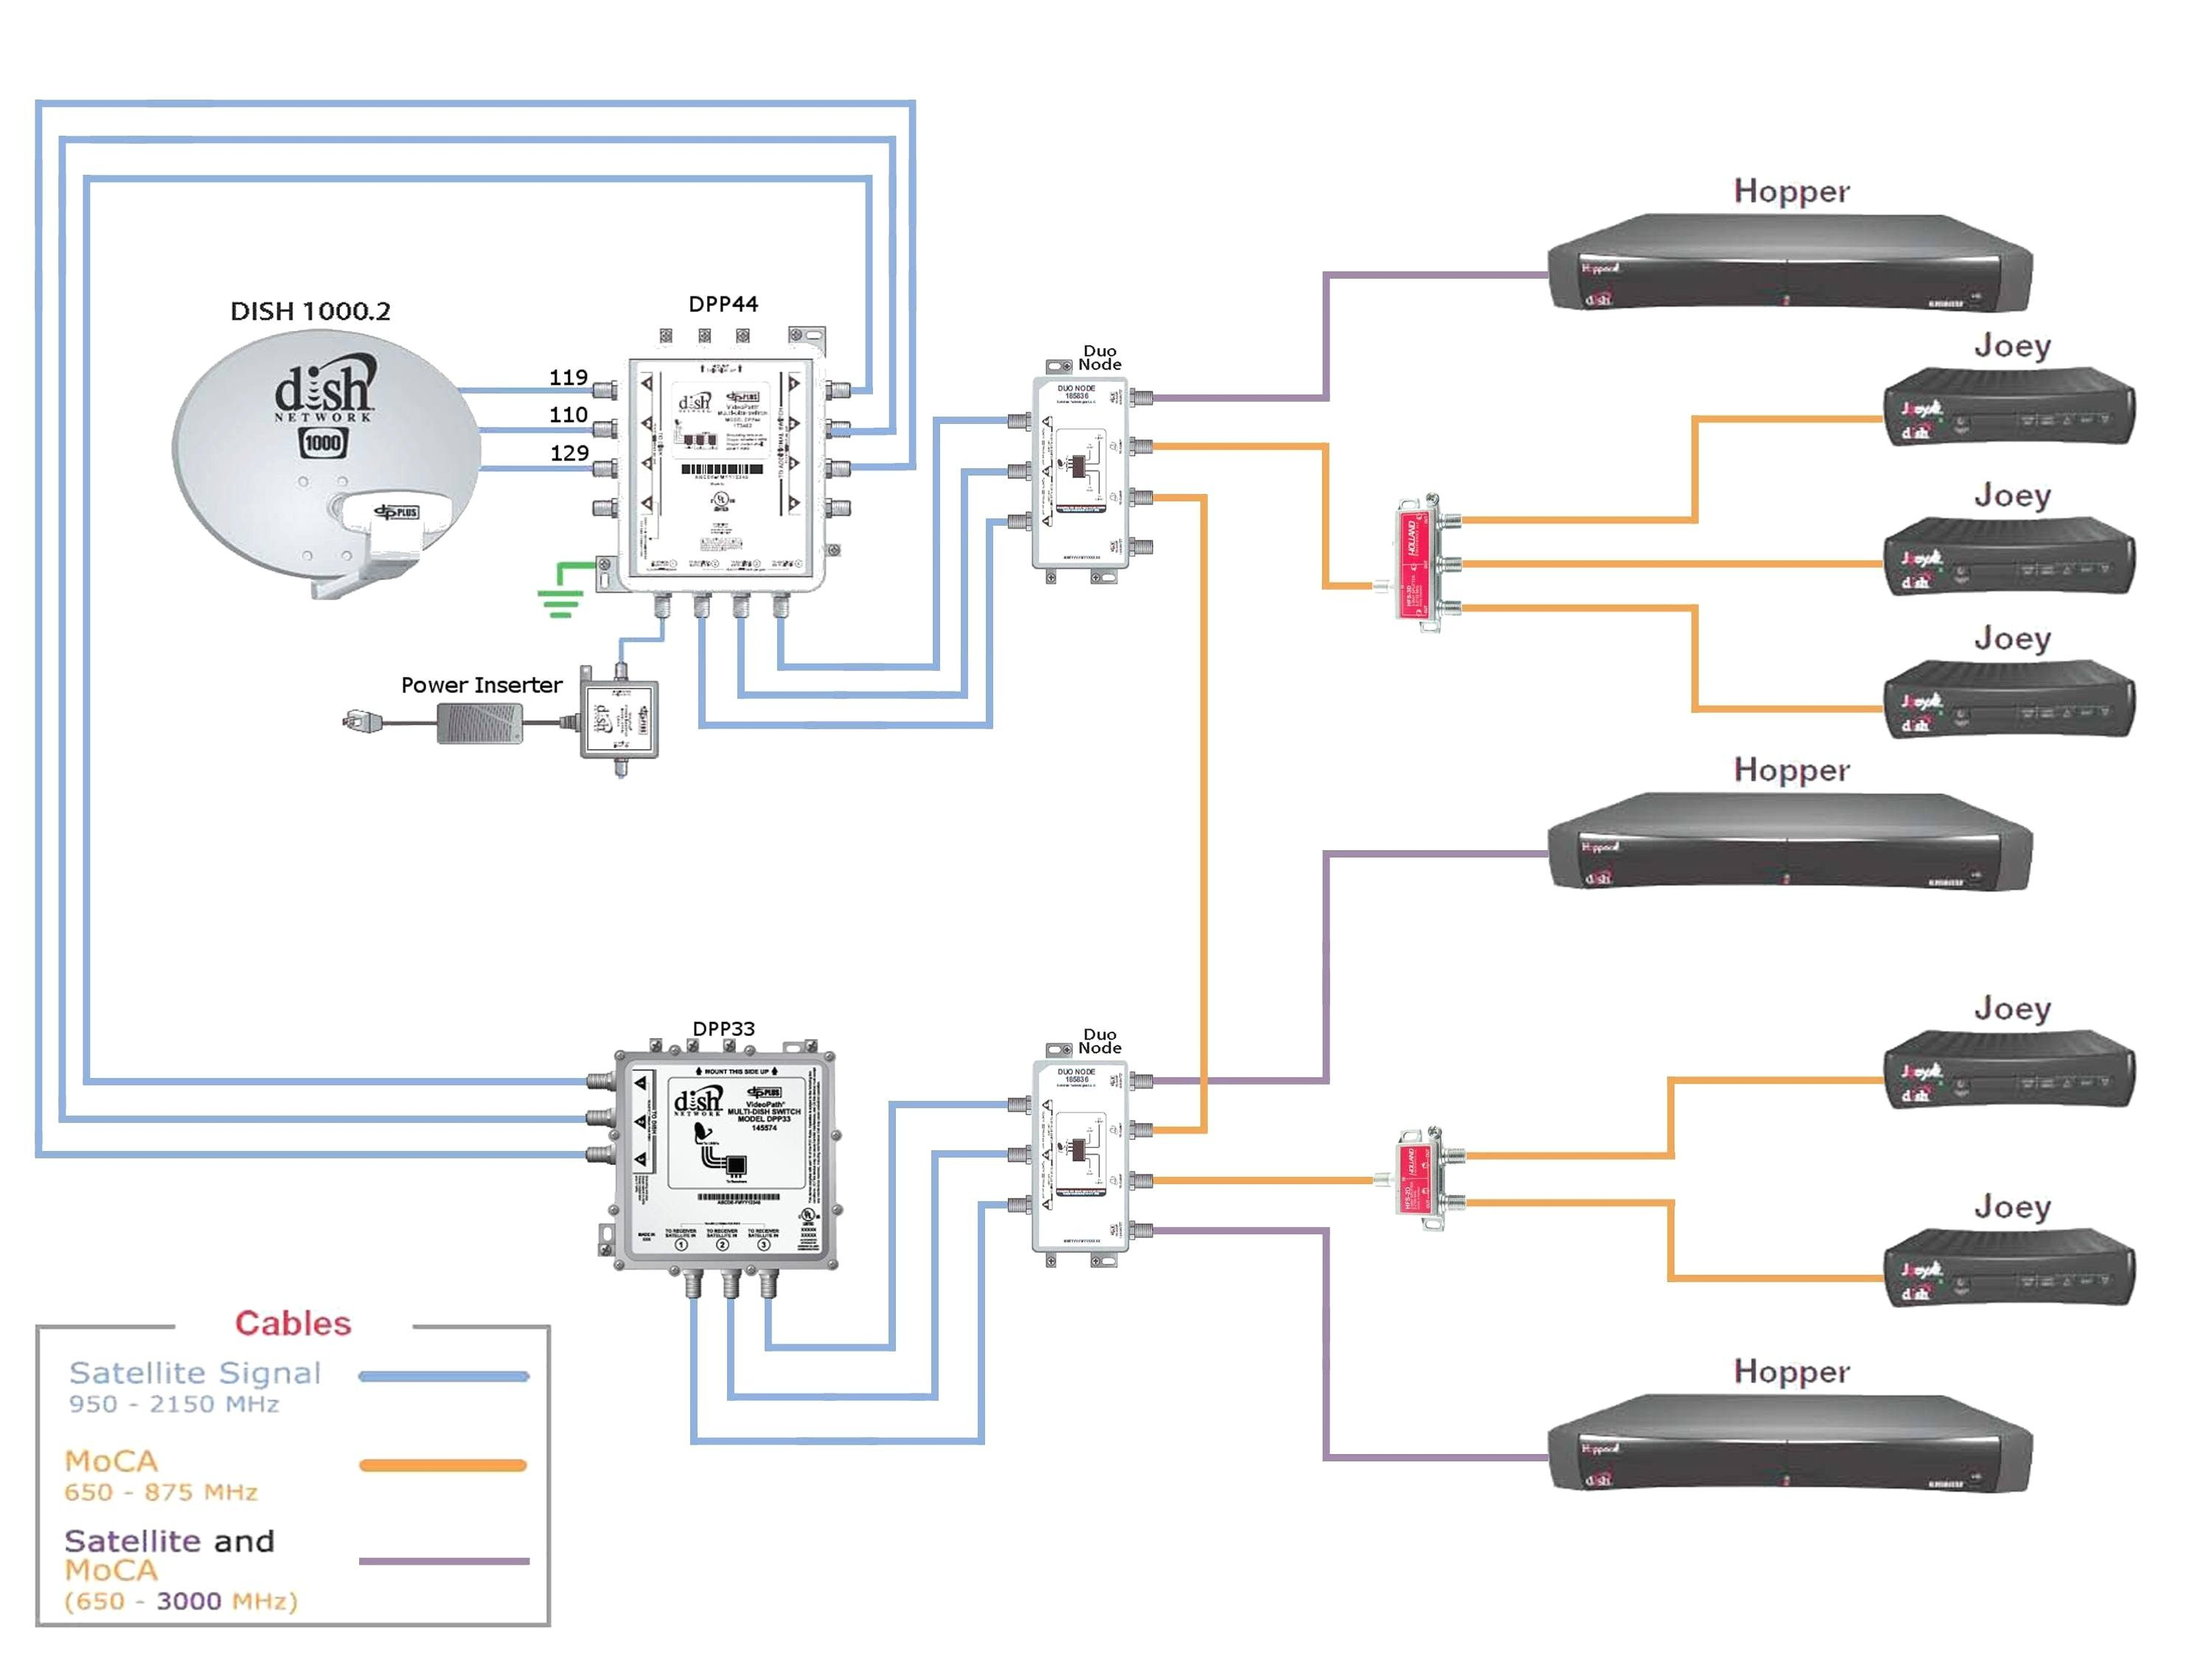 Dish Network Wiring Diagrams - Diagram Data Manual on network wire art, office wiring diagram, network wire frame, network wire symbol, network wire tools, satellite diagram, lan wiring diagram, network wire graphic, network wire end,